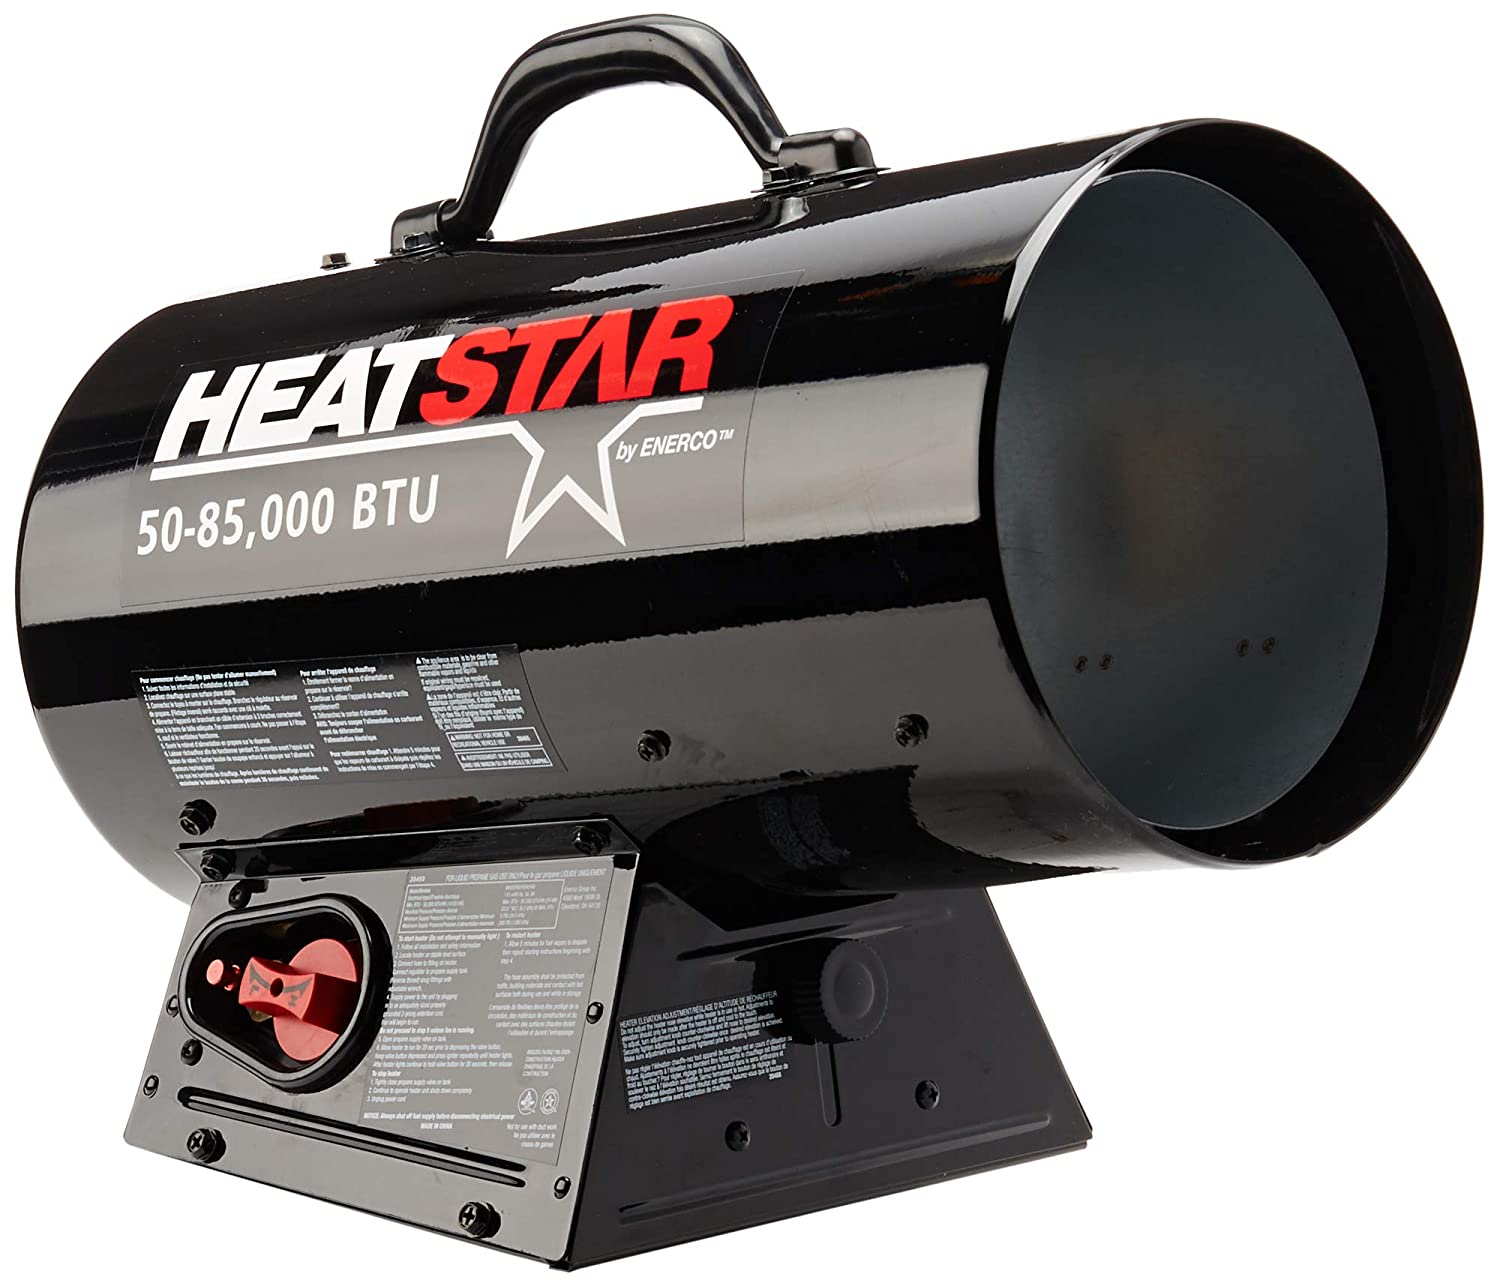 Heatstar Raleigh Mall By Elegant Enerco F170085 Forced Propane Air Variable HS Heater